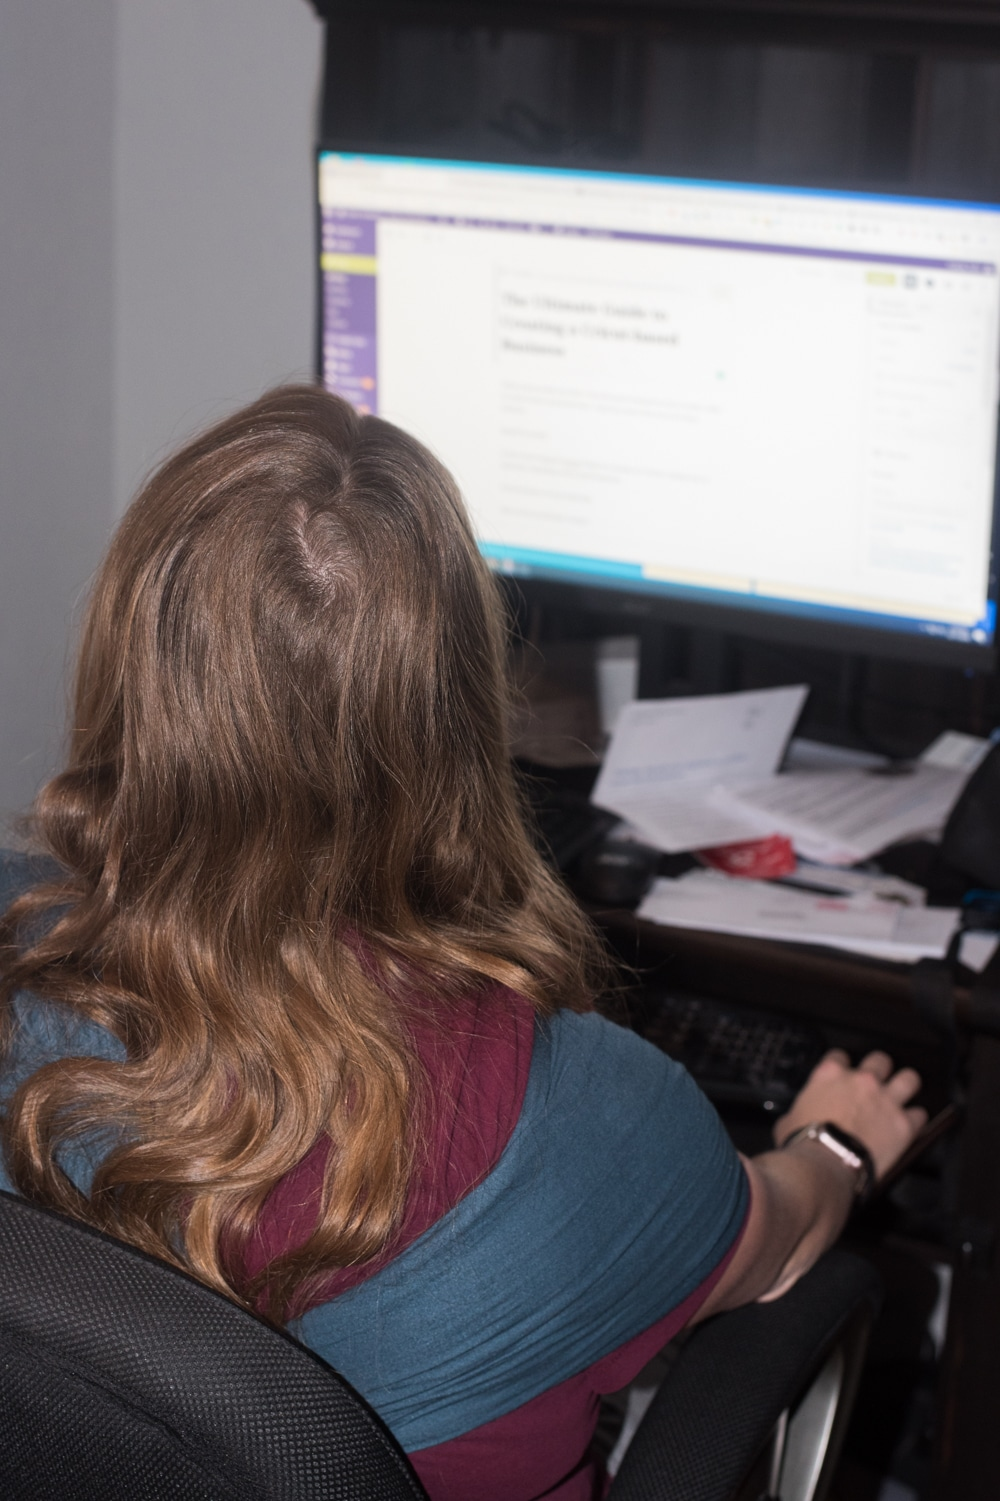 A person sitting at a desk in front of a computer